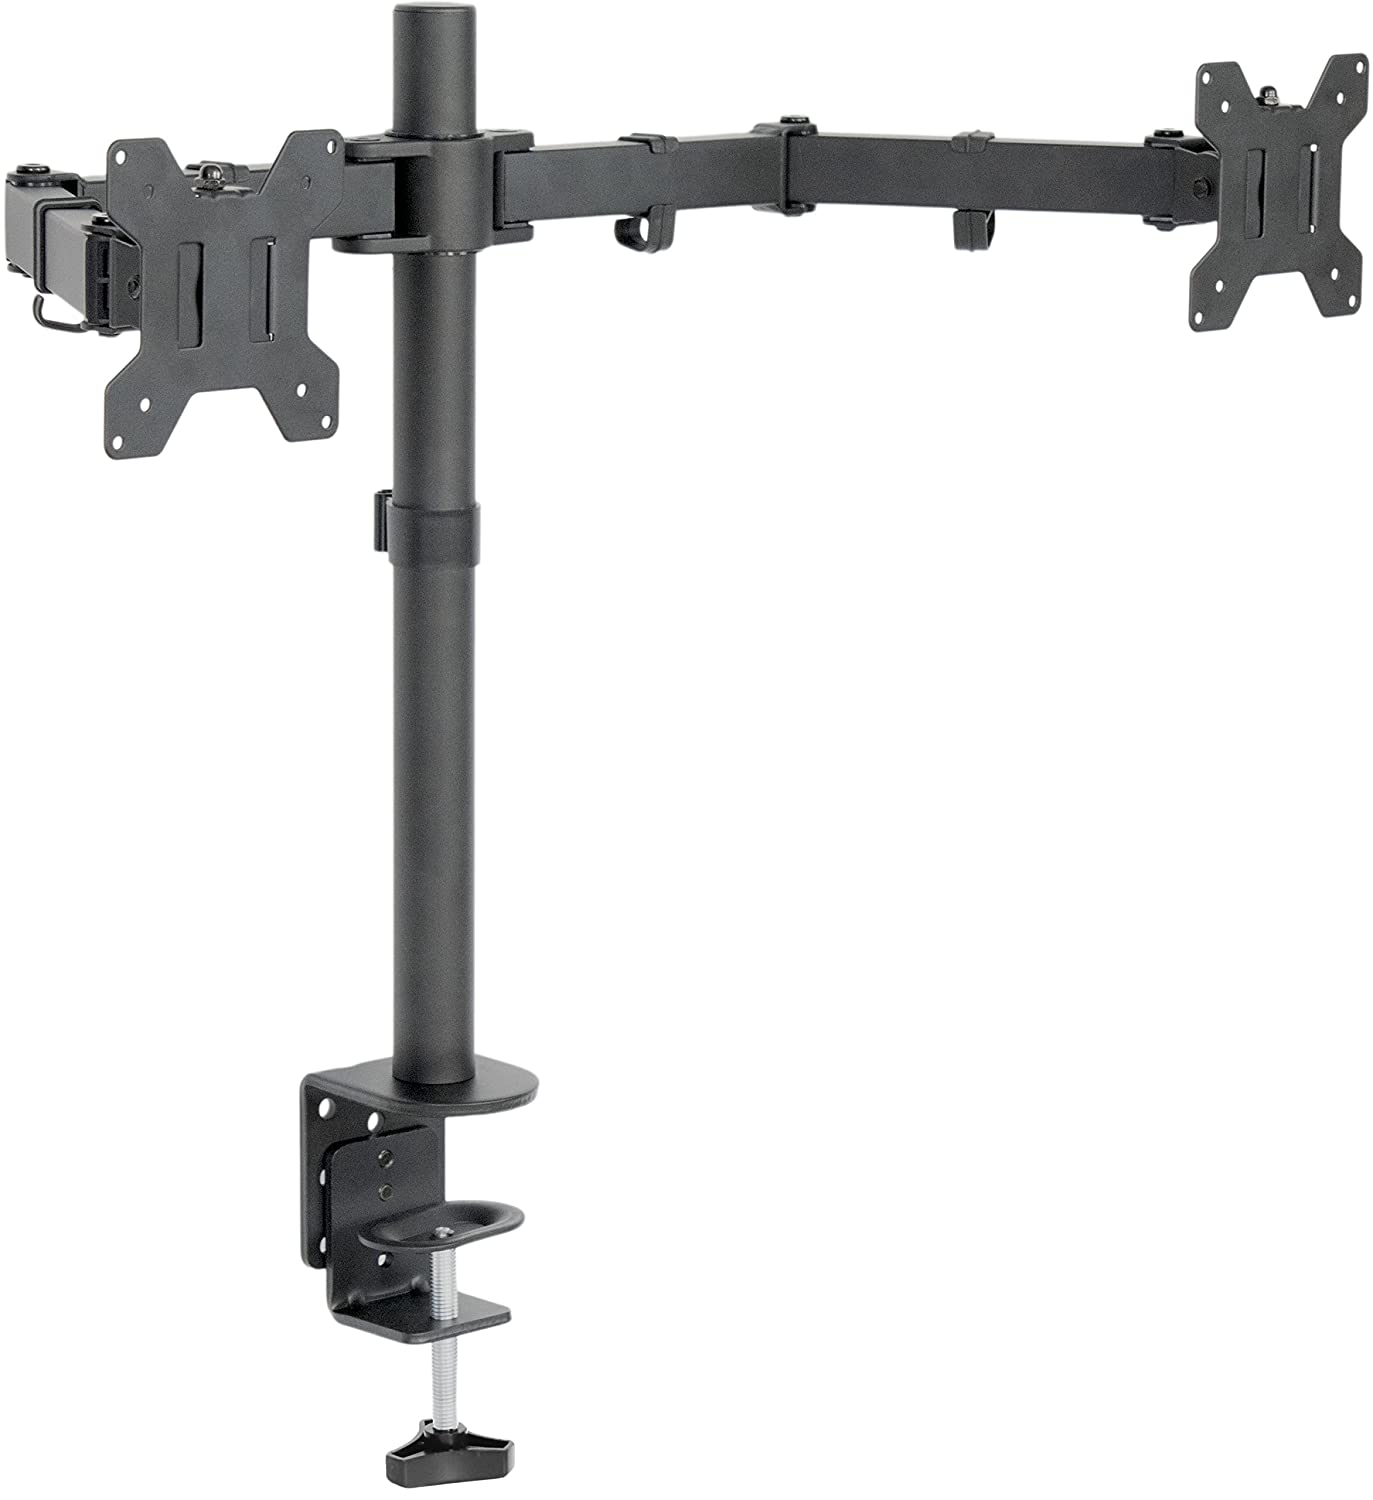 """VIVO Dual LCD LED Monitor Desk Mount Stand Heavy Duty Fully Adjustable fits 2/Two Screens up to 27"""" (STAND-V002)"""